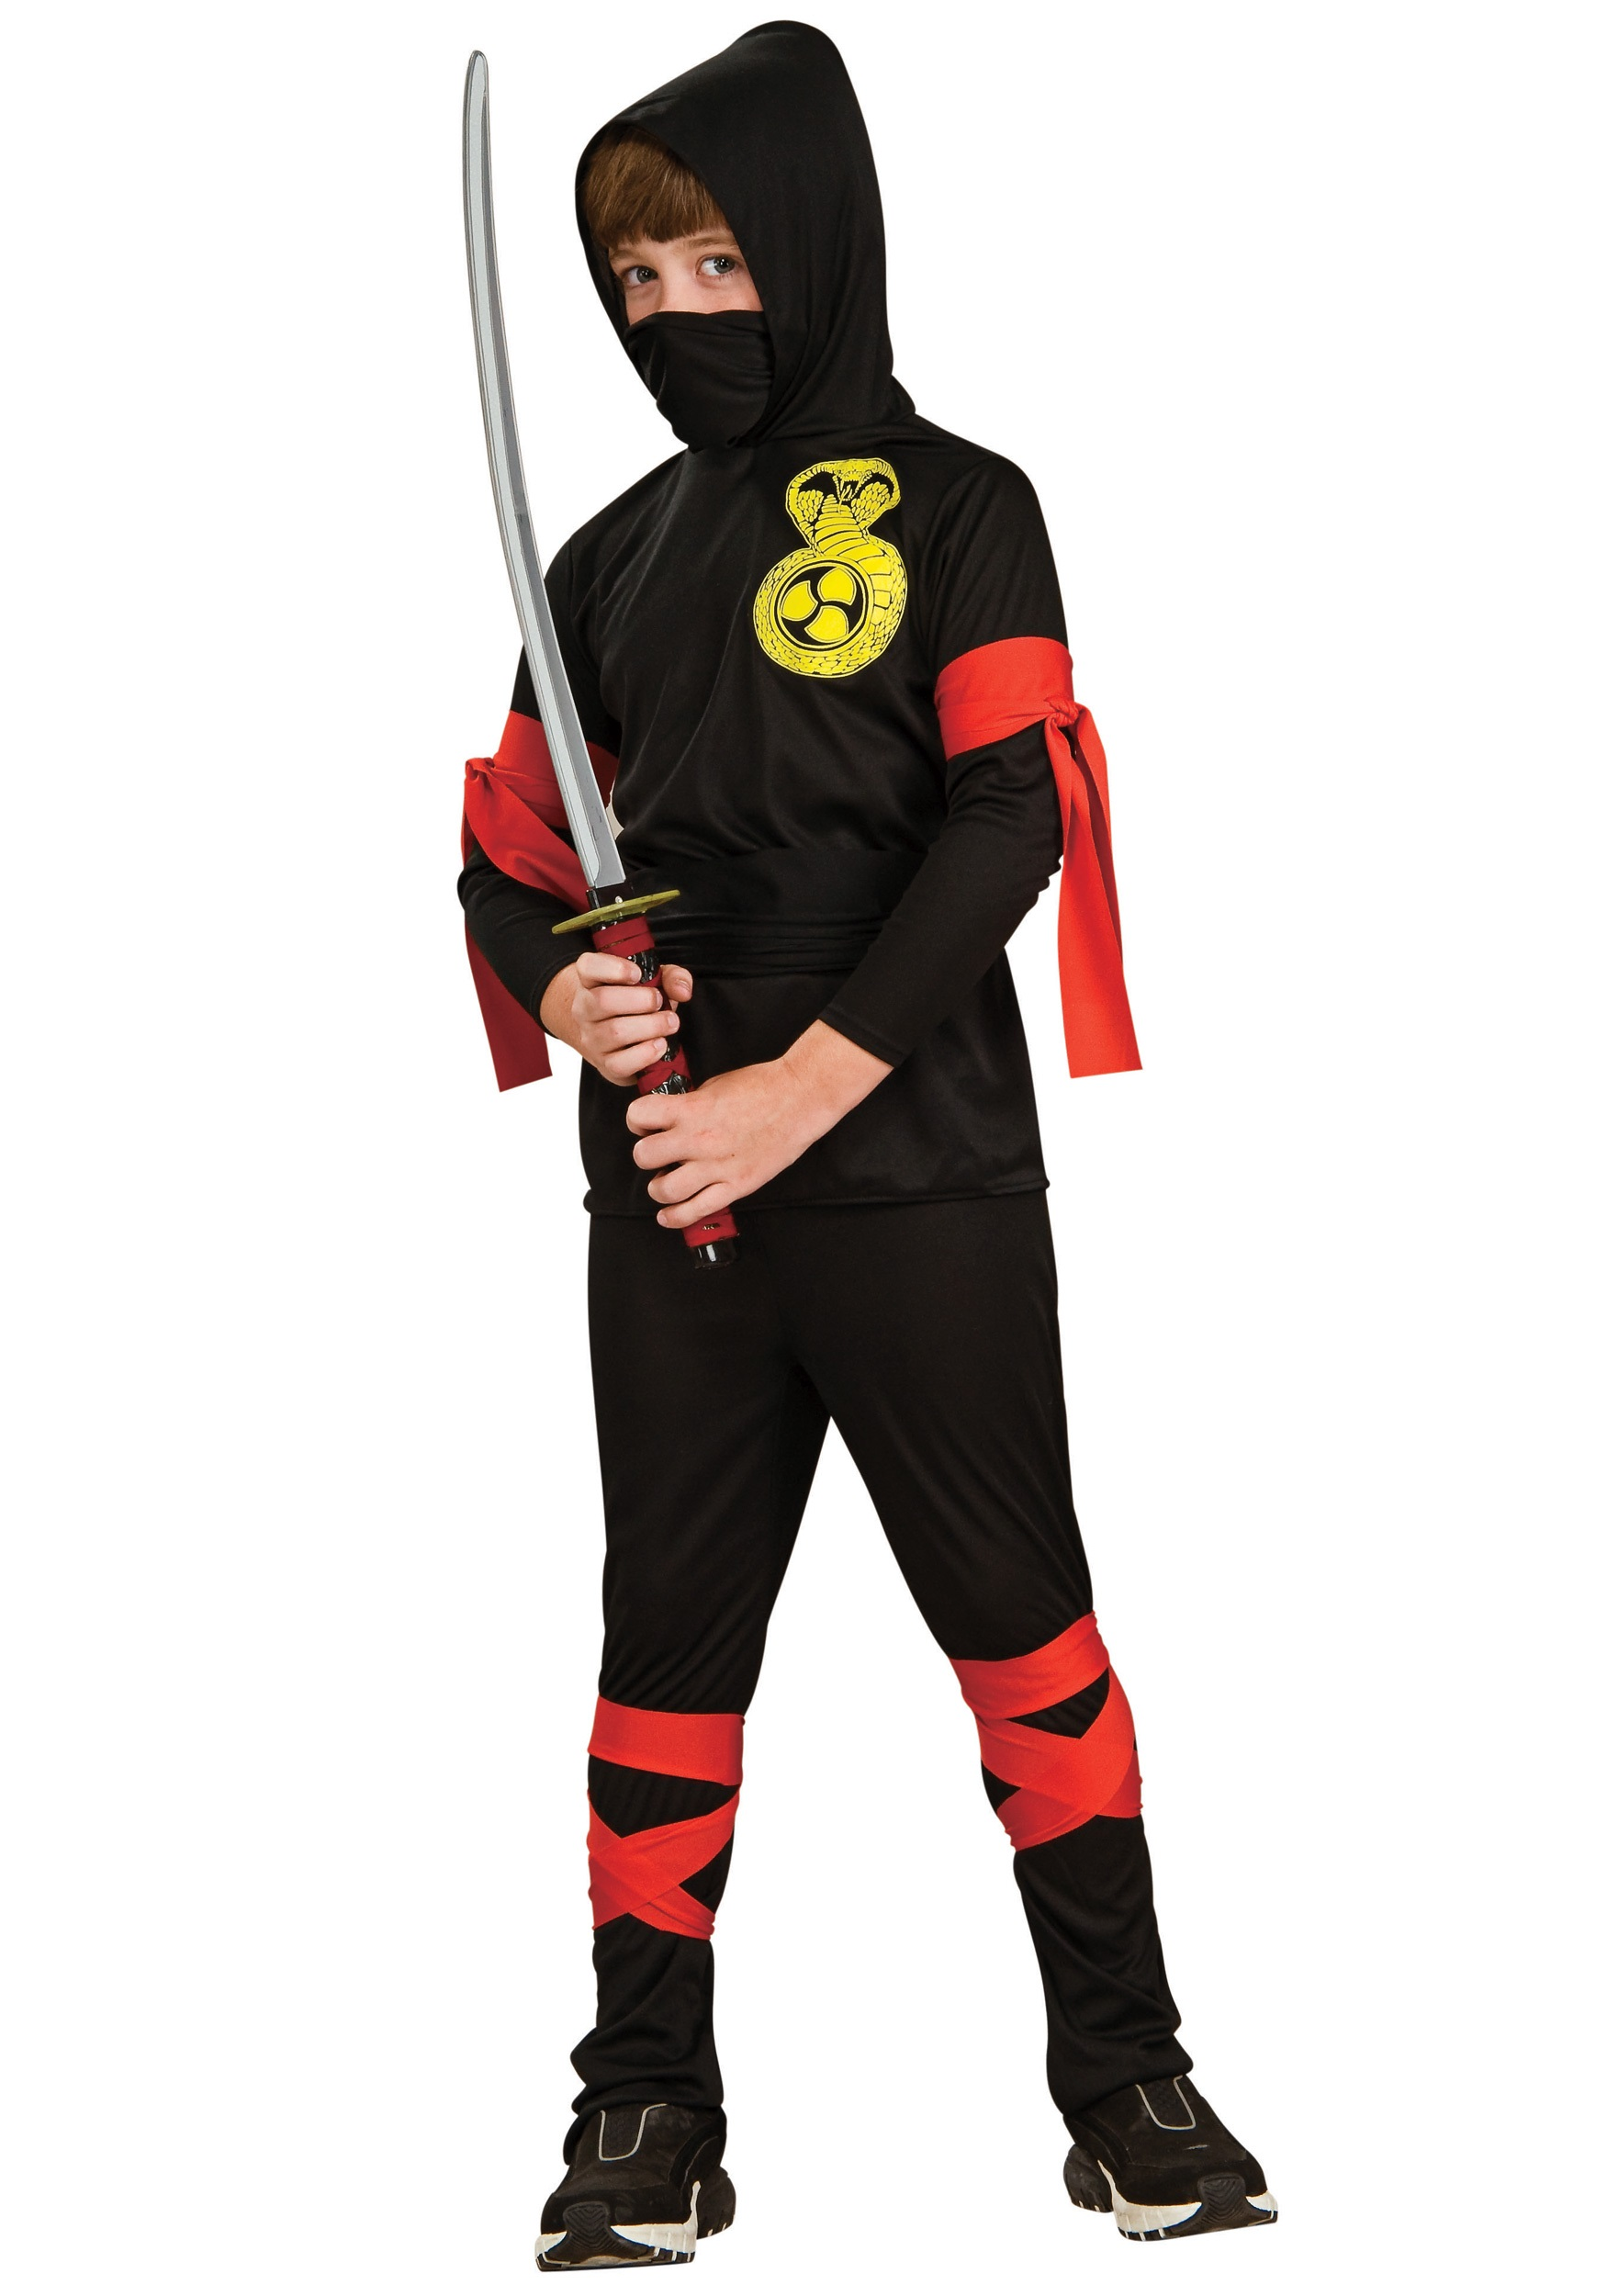 Kids Ninja Costume  sc 1 st  Halloween Costumes : kids ninja costume  - Germanpascual.Com